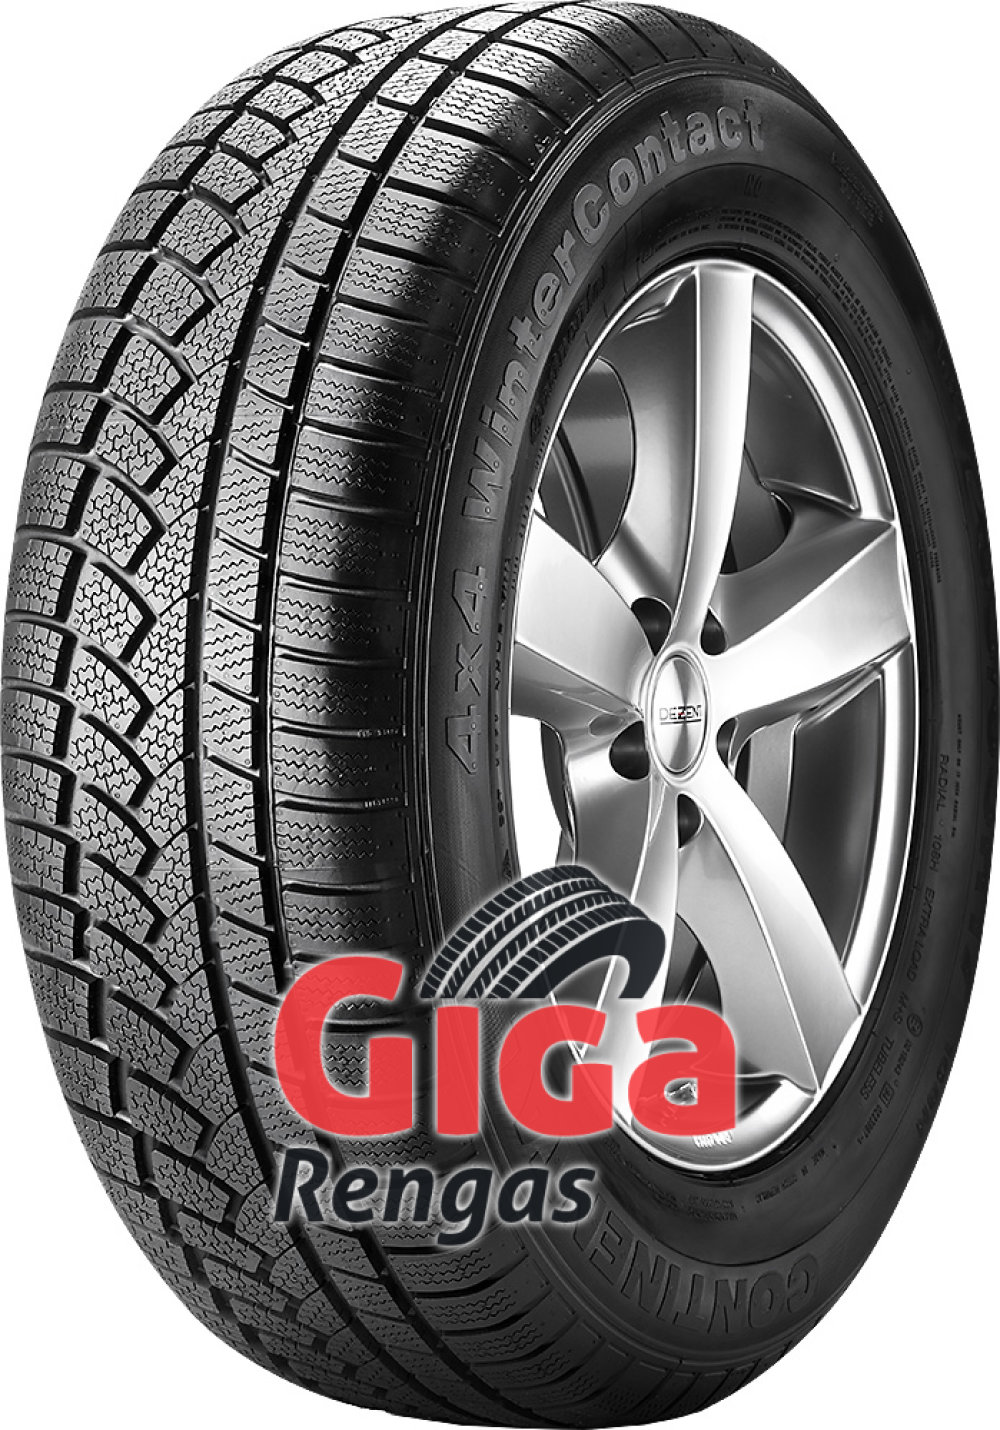 Continental 4X4 WinterContact ( 275/55 R17 109H )